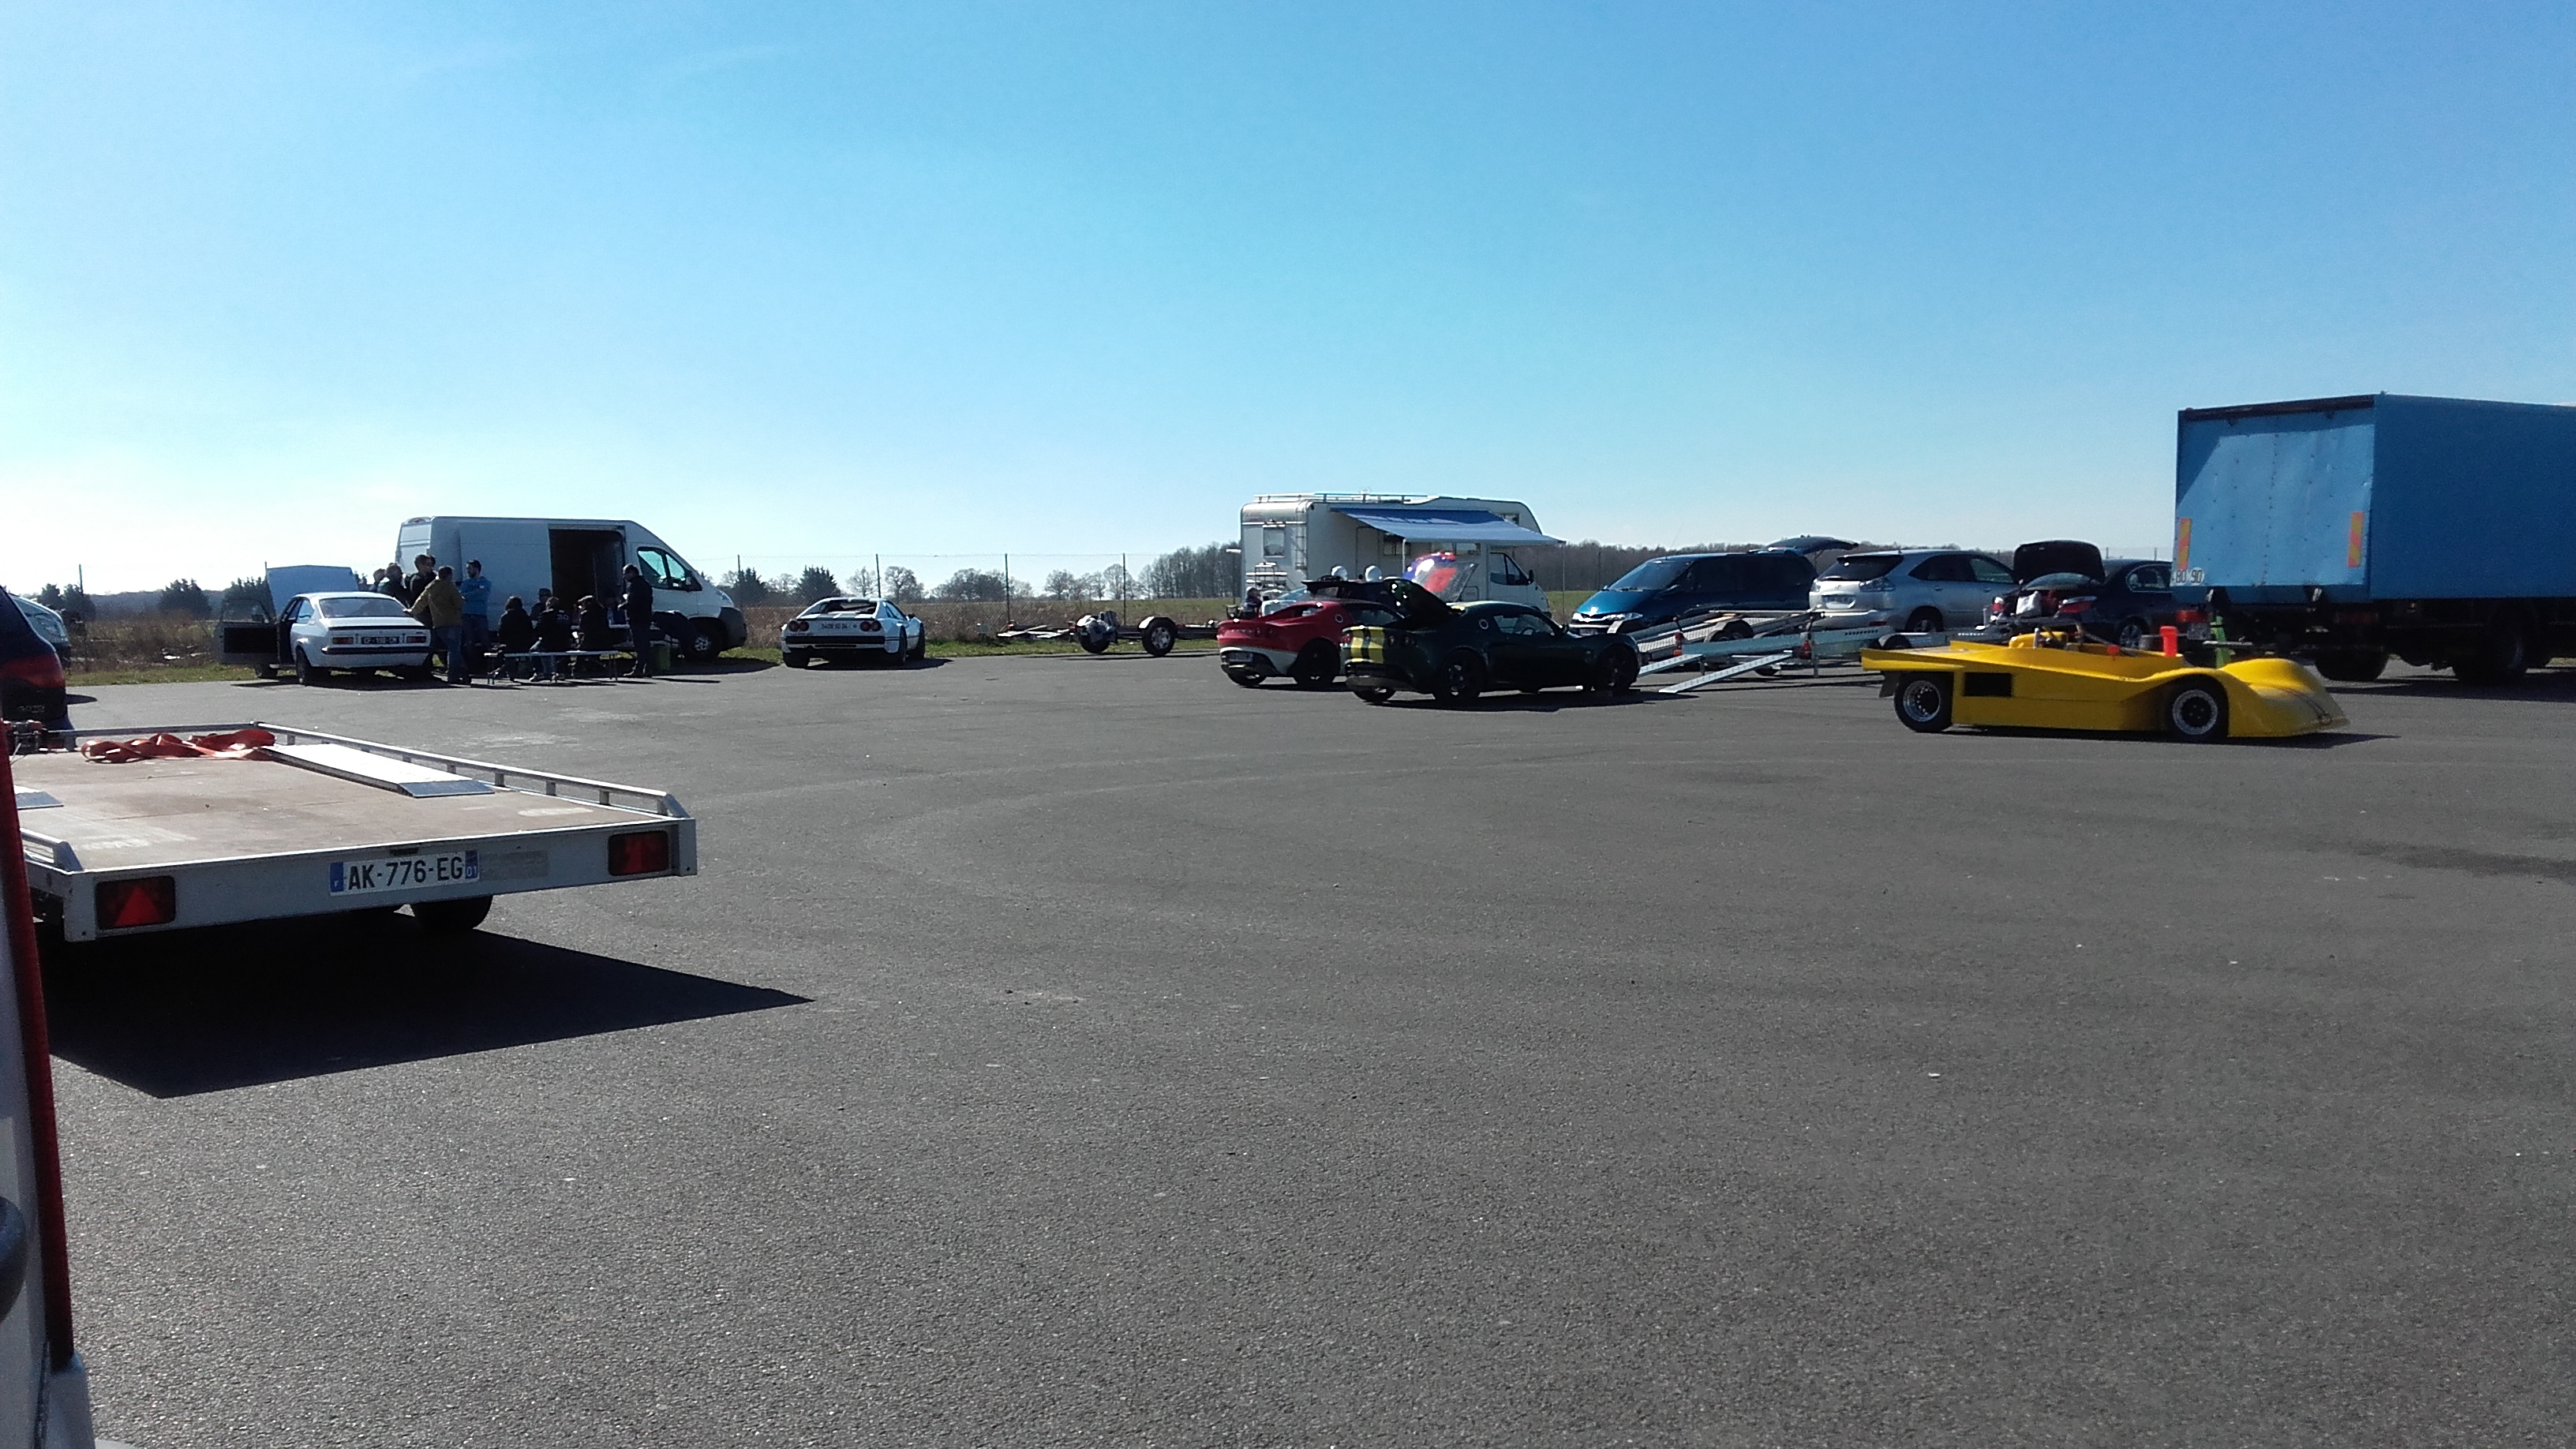 circuit du bourbonnais parking